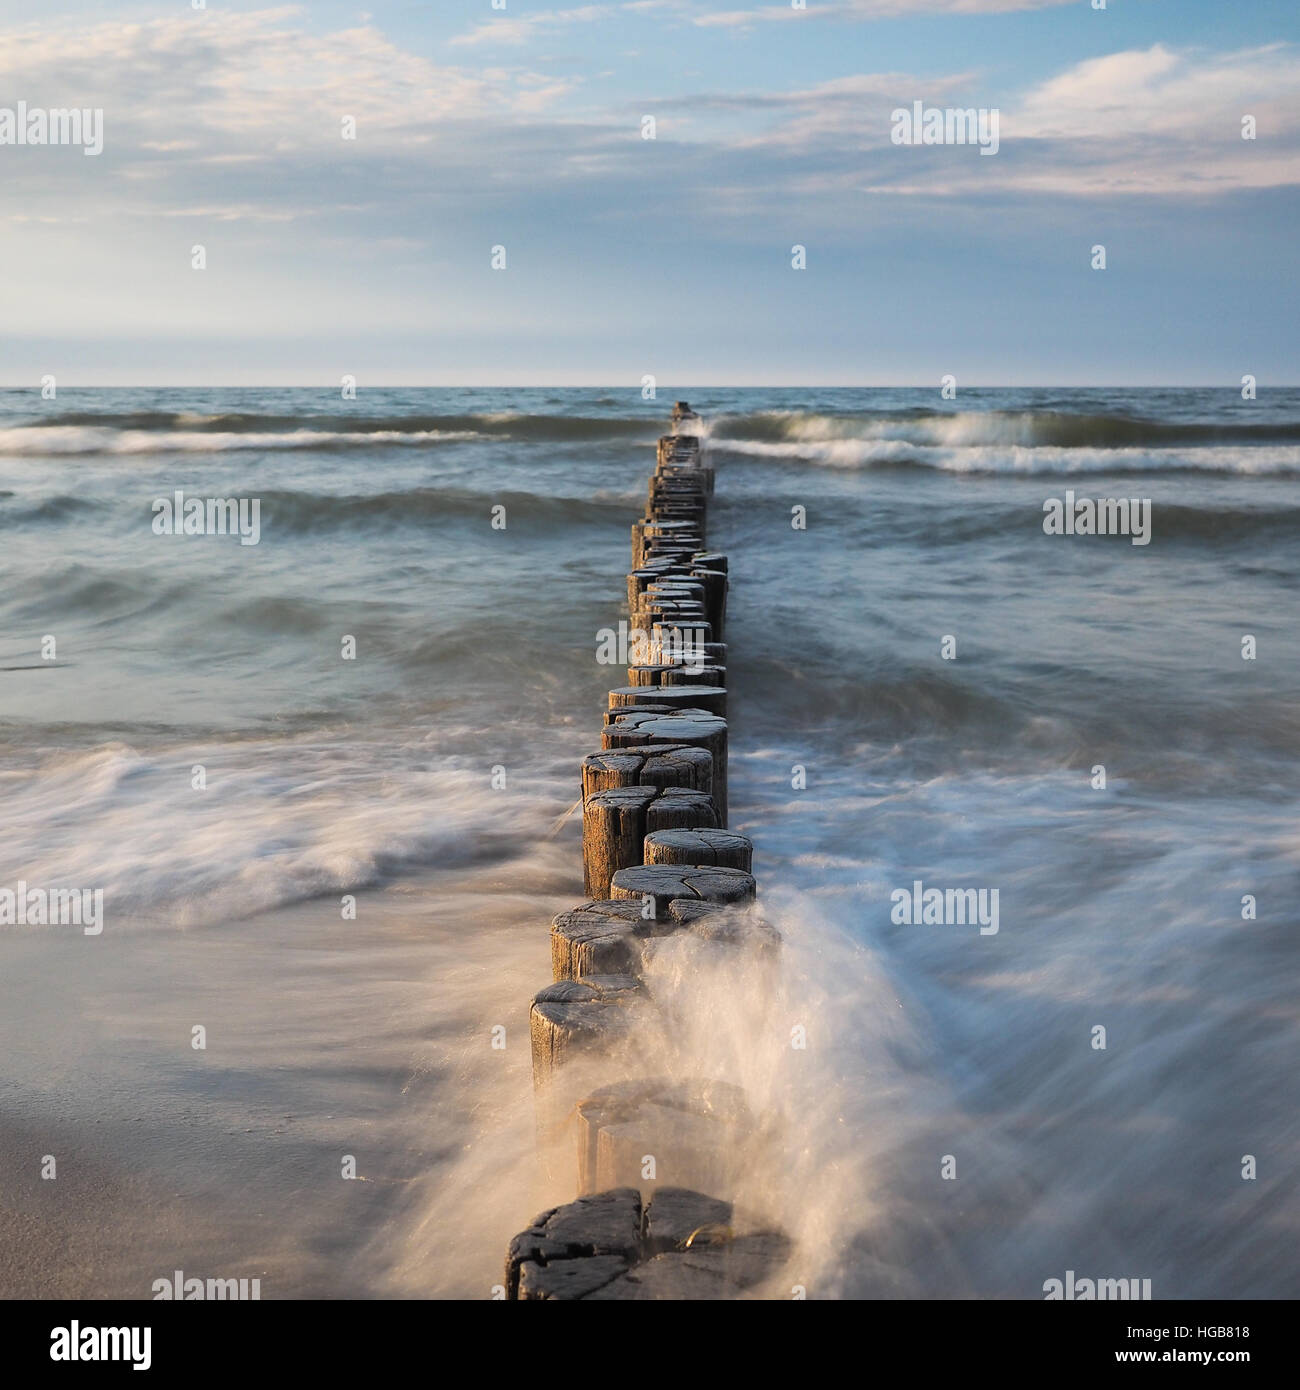 Baltic Sea with breakwaters at daylight - Stock Image